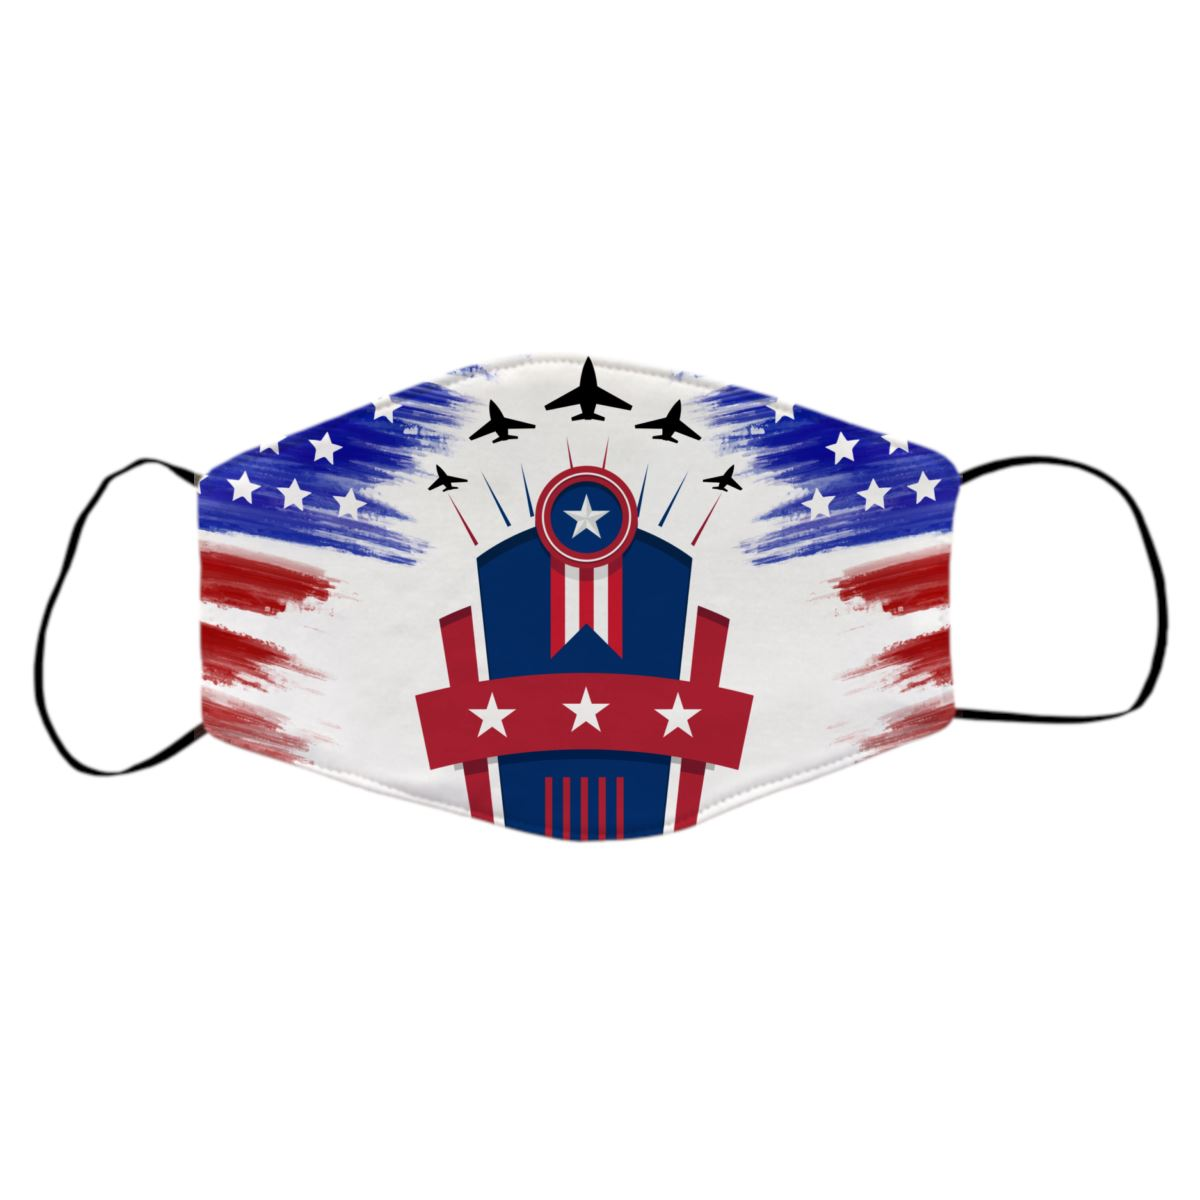 Reusable Face Mask - Fourth of July American Flags Protective Masks Print Brains Flyover